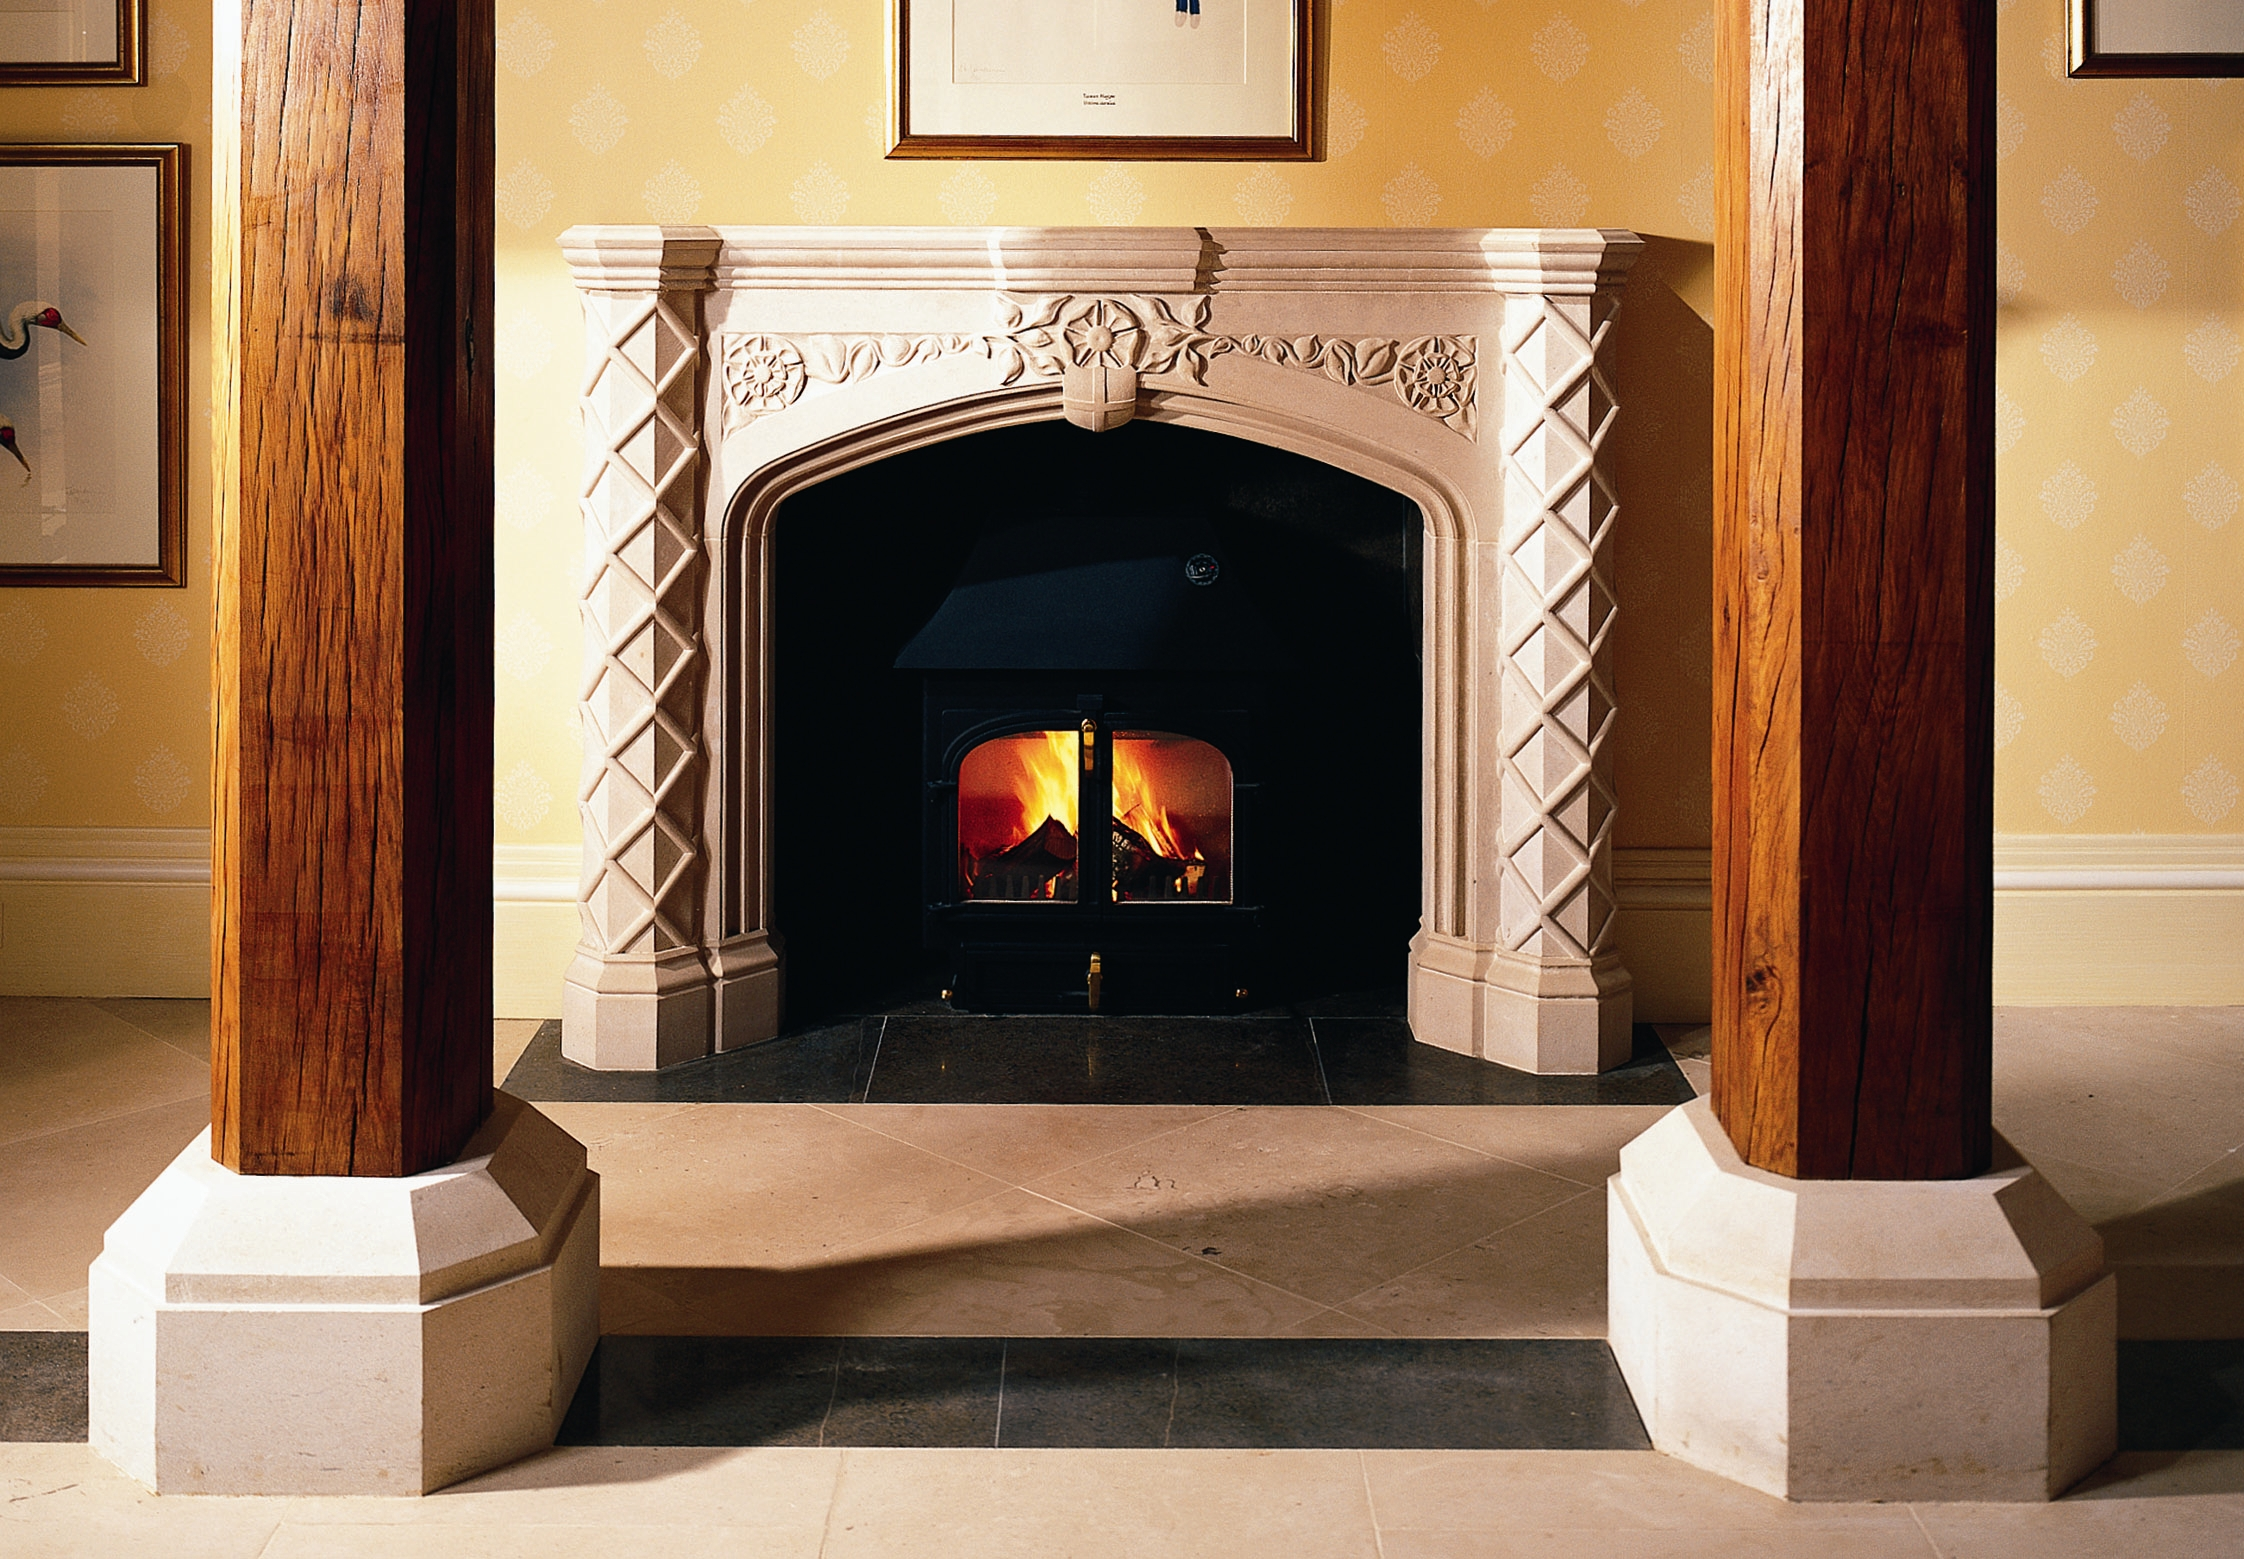 15. Carved Portland stone fireplace, influenced by the refurbished hall's building details – North Yorkshire